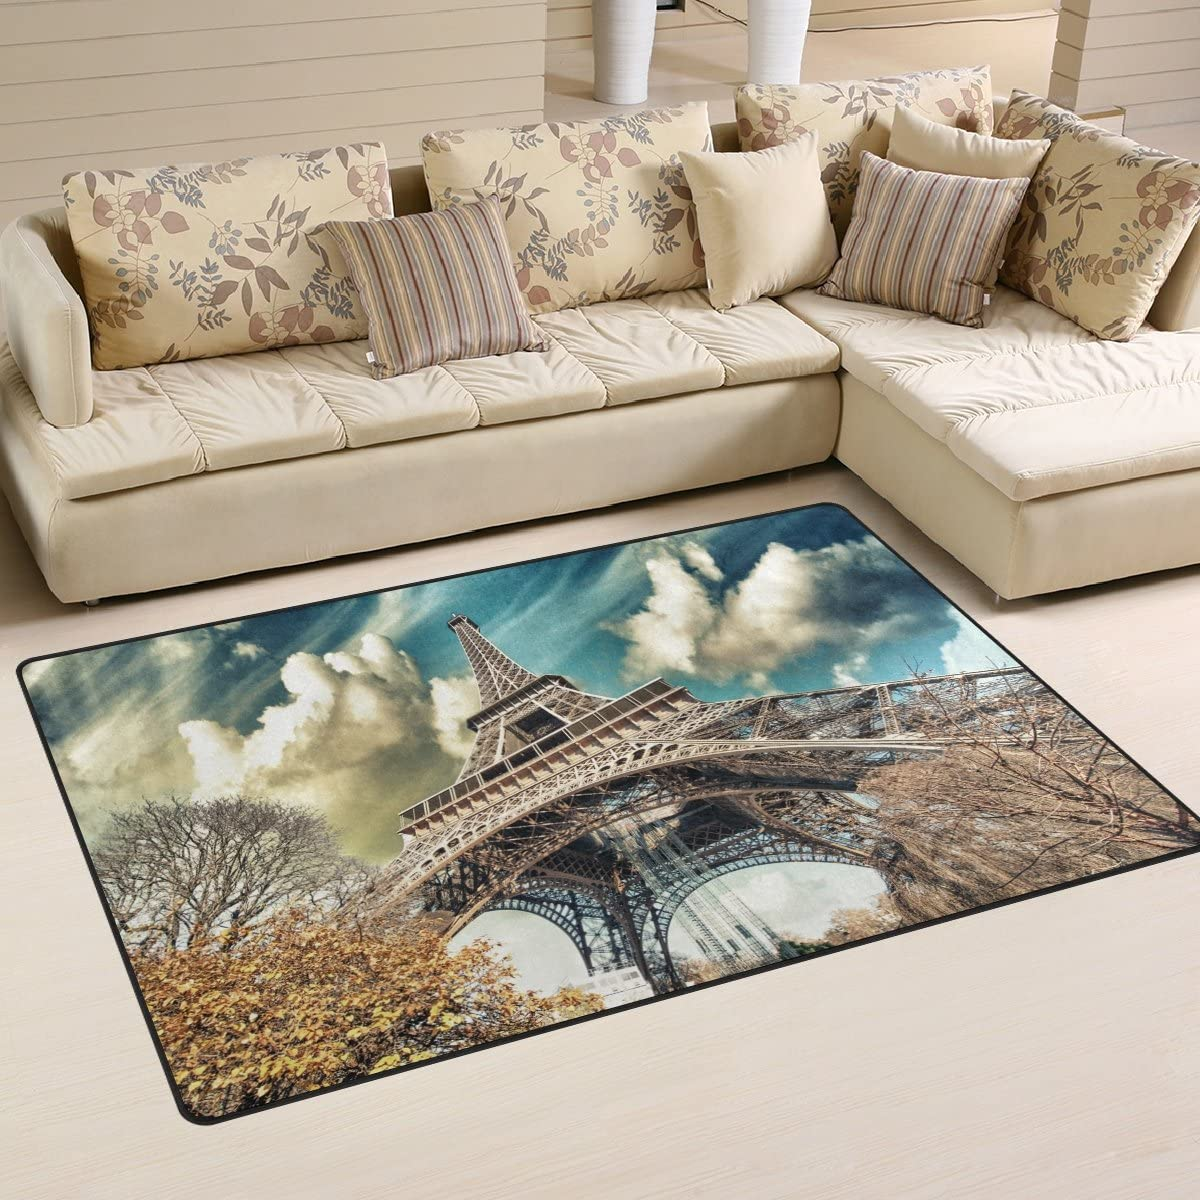 LORVIES Wonderful Street View of Paris Eiffel Tower Area Rug Carpet Non-Slip Floor Mat Doormats for Living Room Bedroom 60 x 39 inches